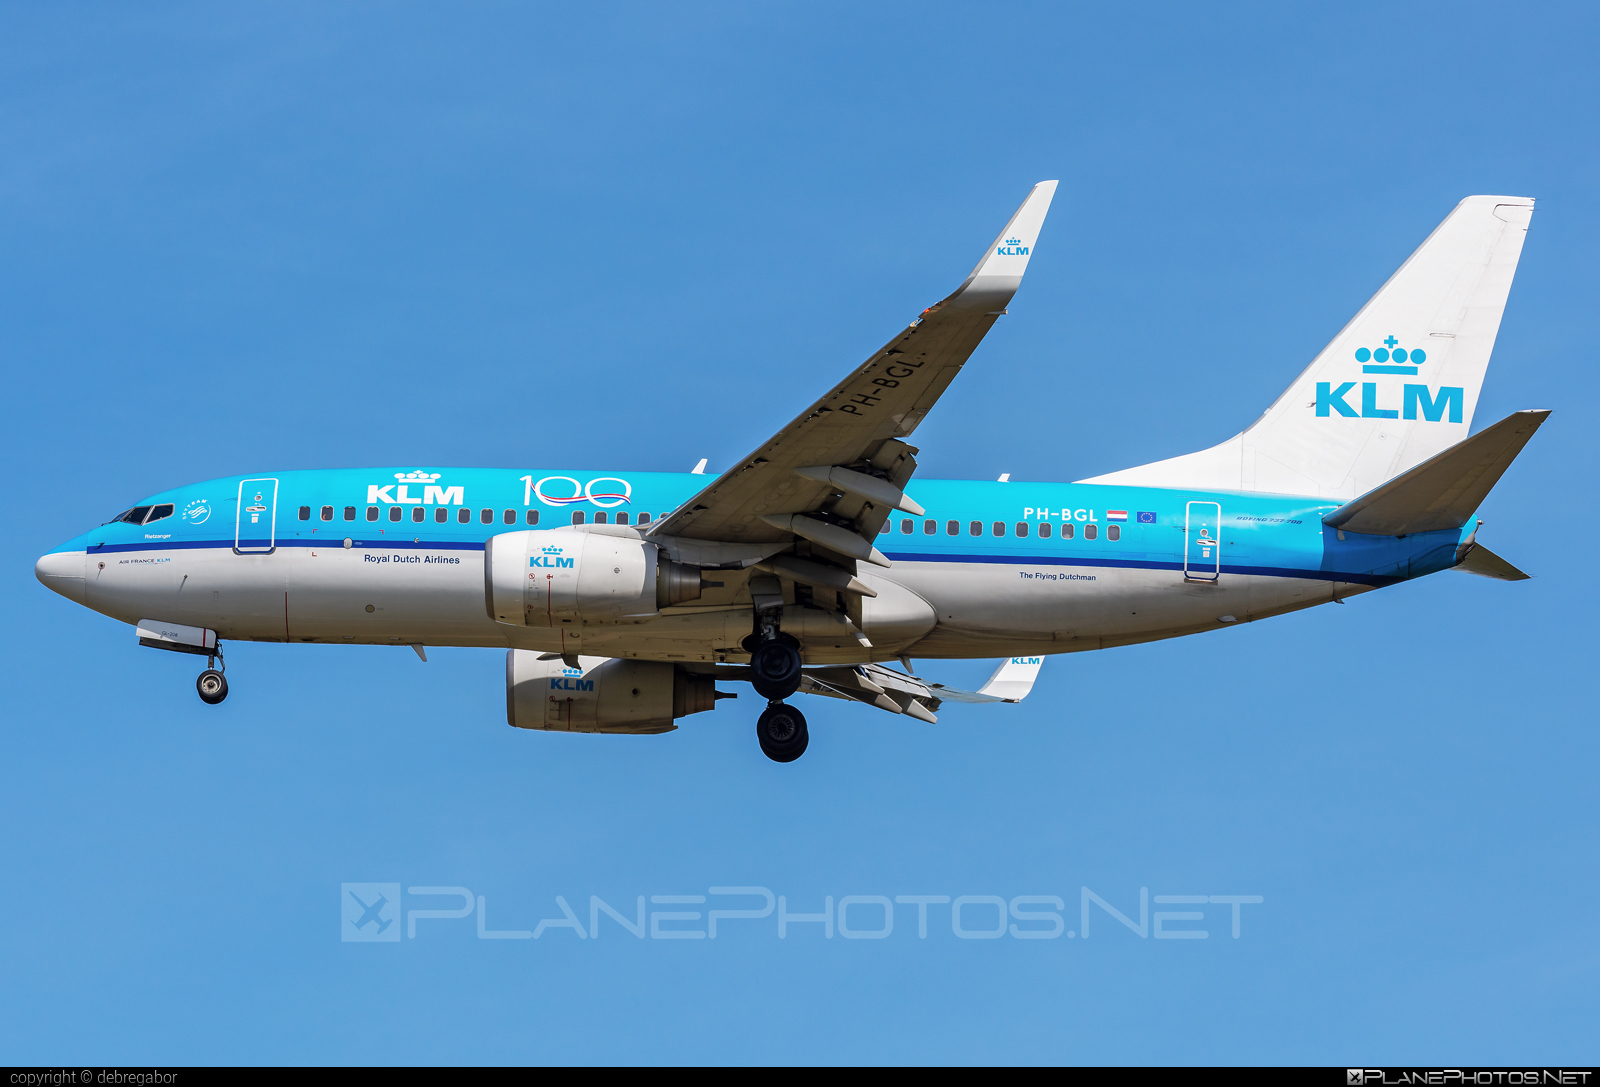 Boeing 737-700 - PH-BGL operated by KLM Royal Dutch Airlines #b737 #b737nextgen #b737ng #boeing #boeing737 #klm #klmroyaldutchairlines #royaldutchairlines